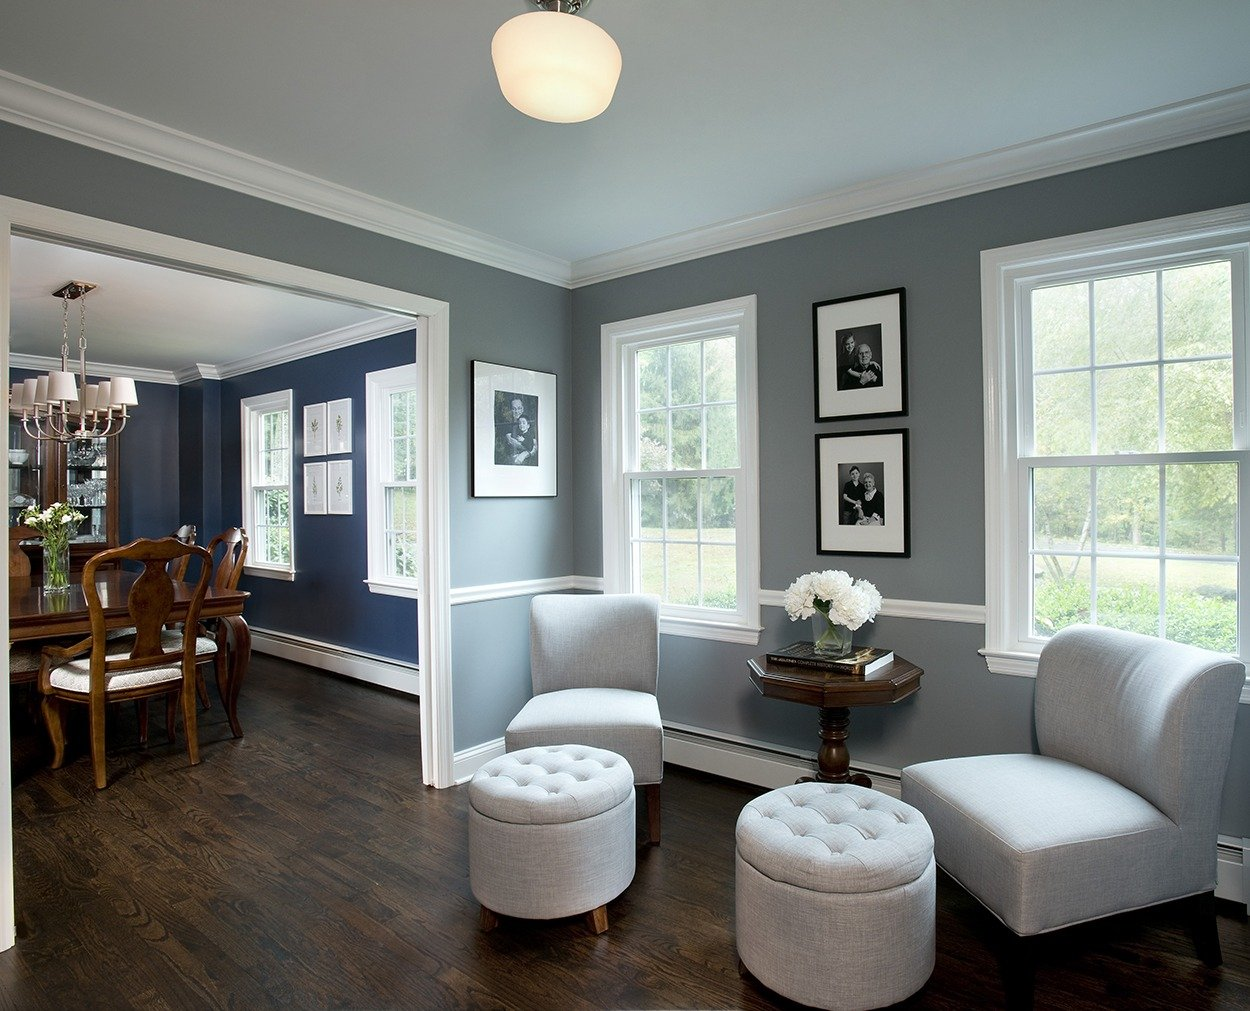 Music room and diningroom in Wilton CT remodel